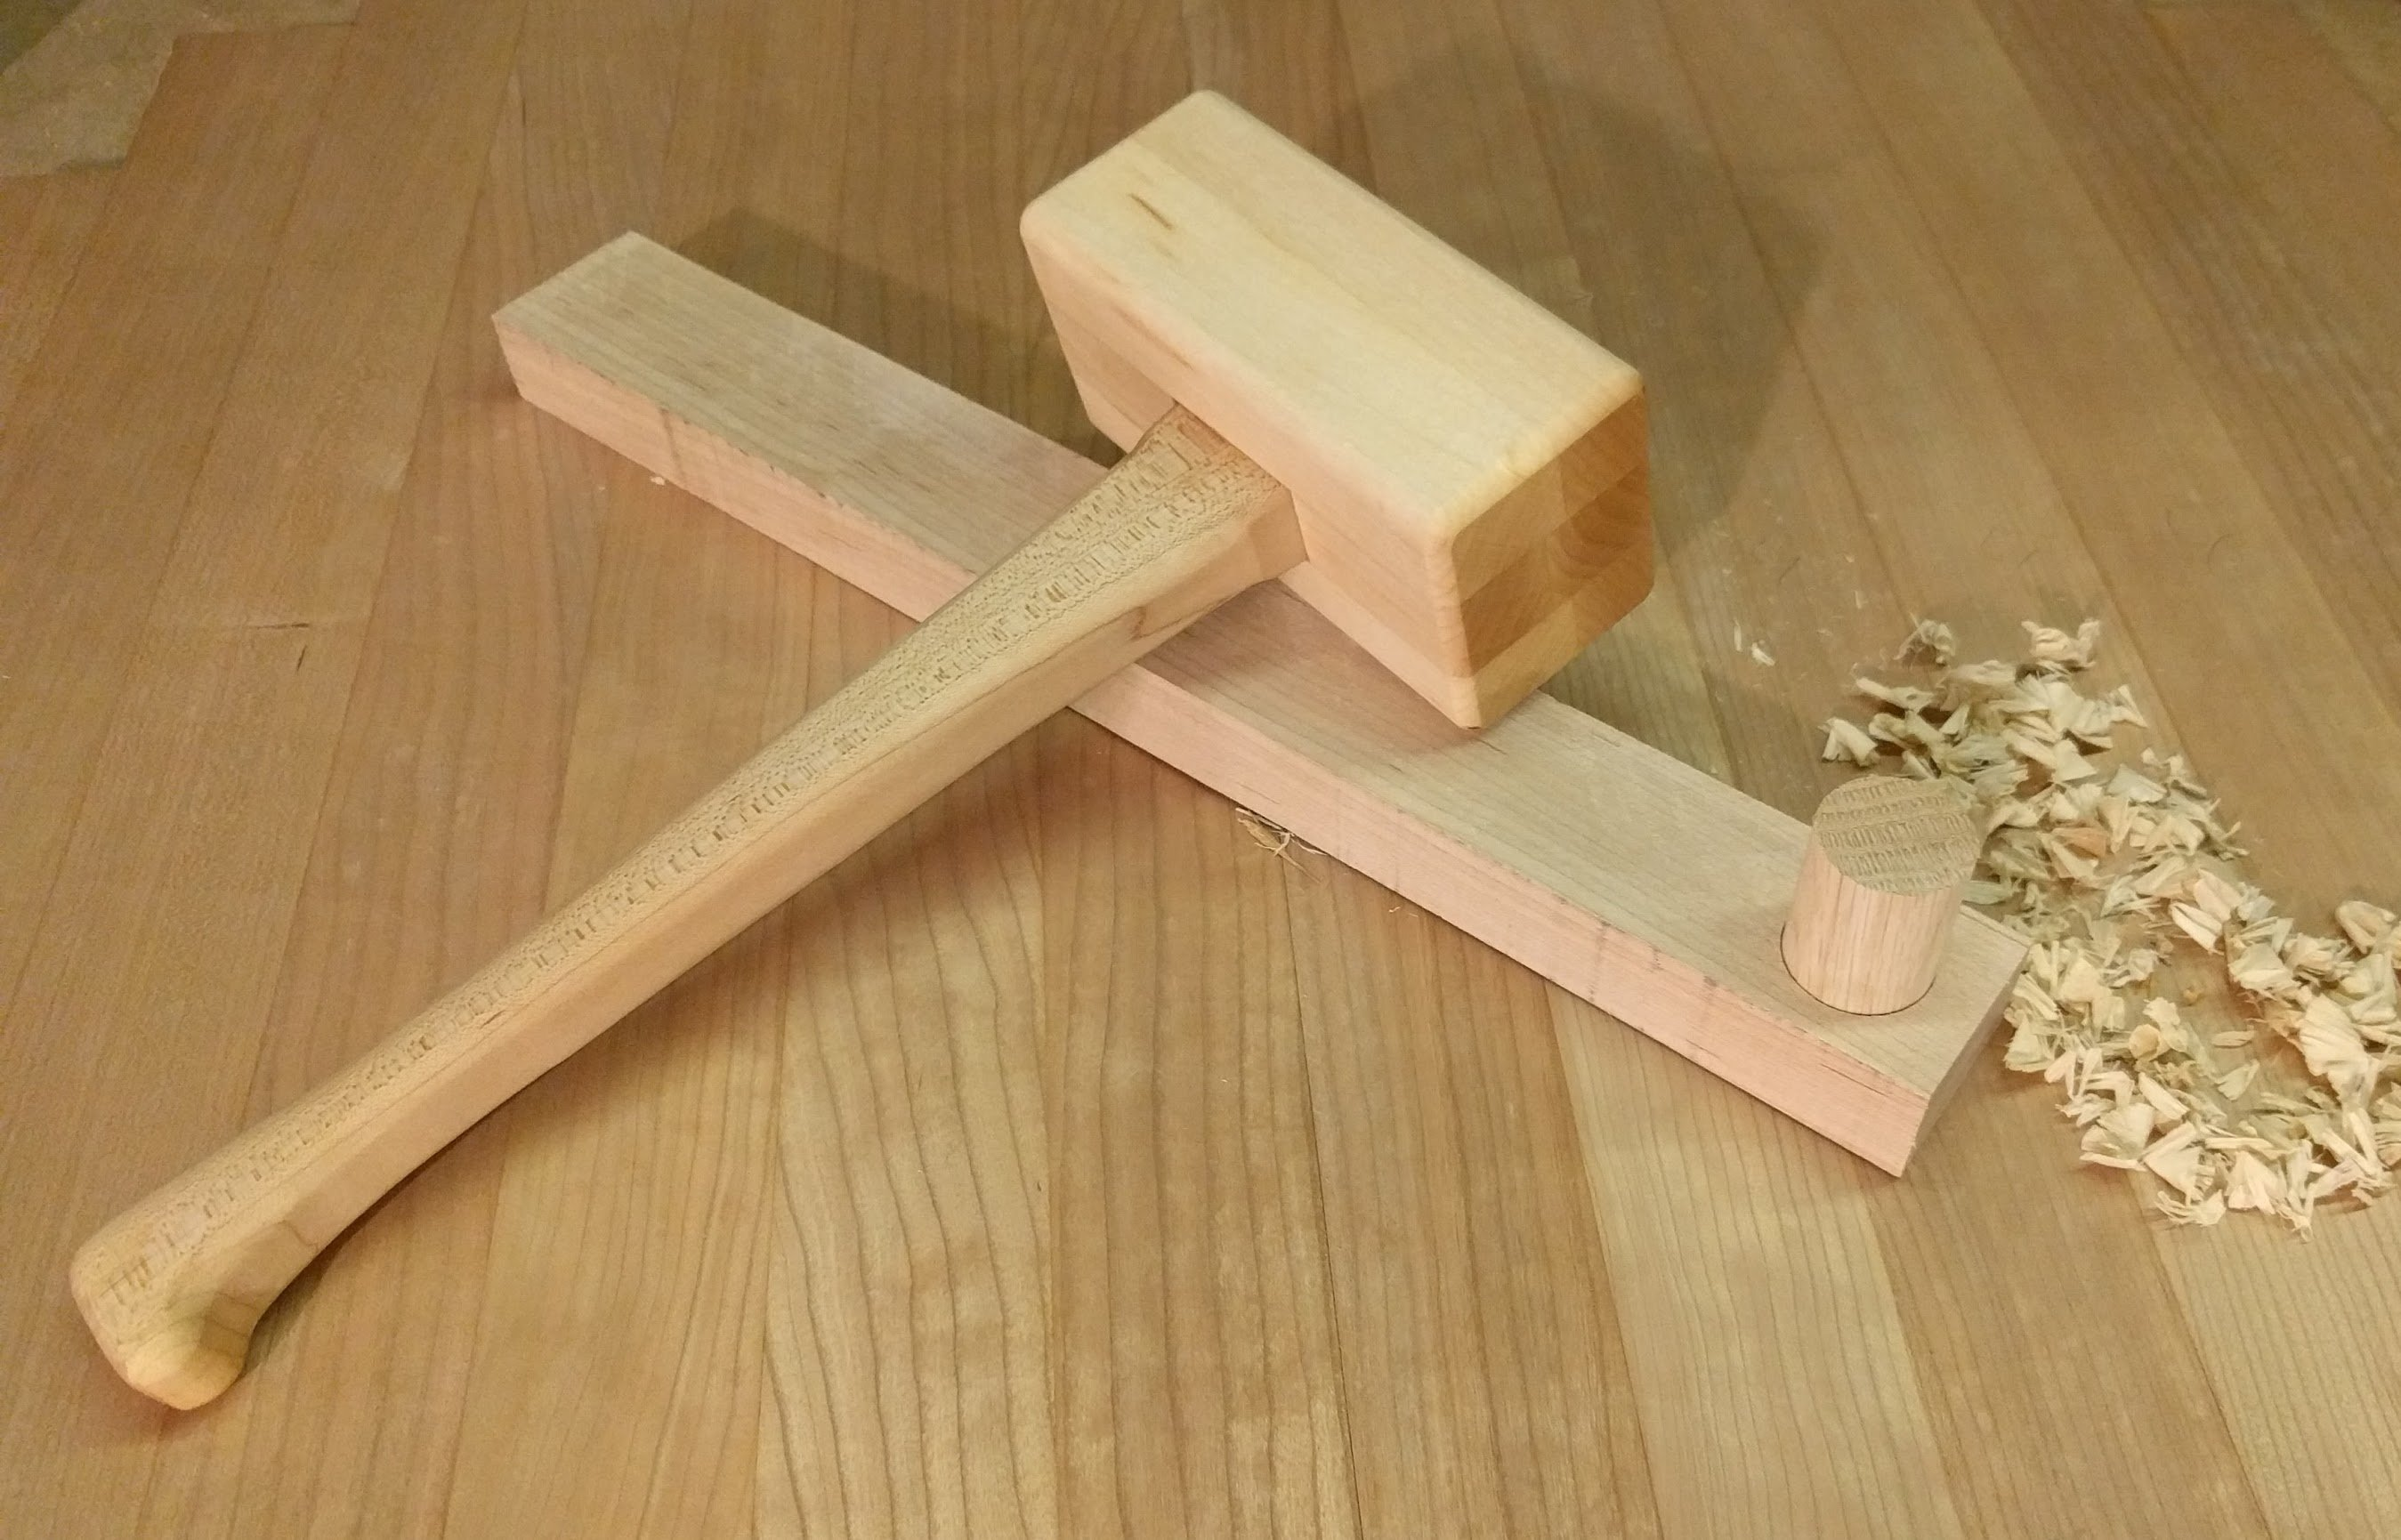 Maple hardwood mallet